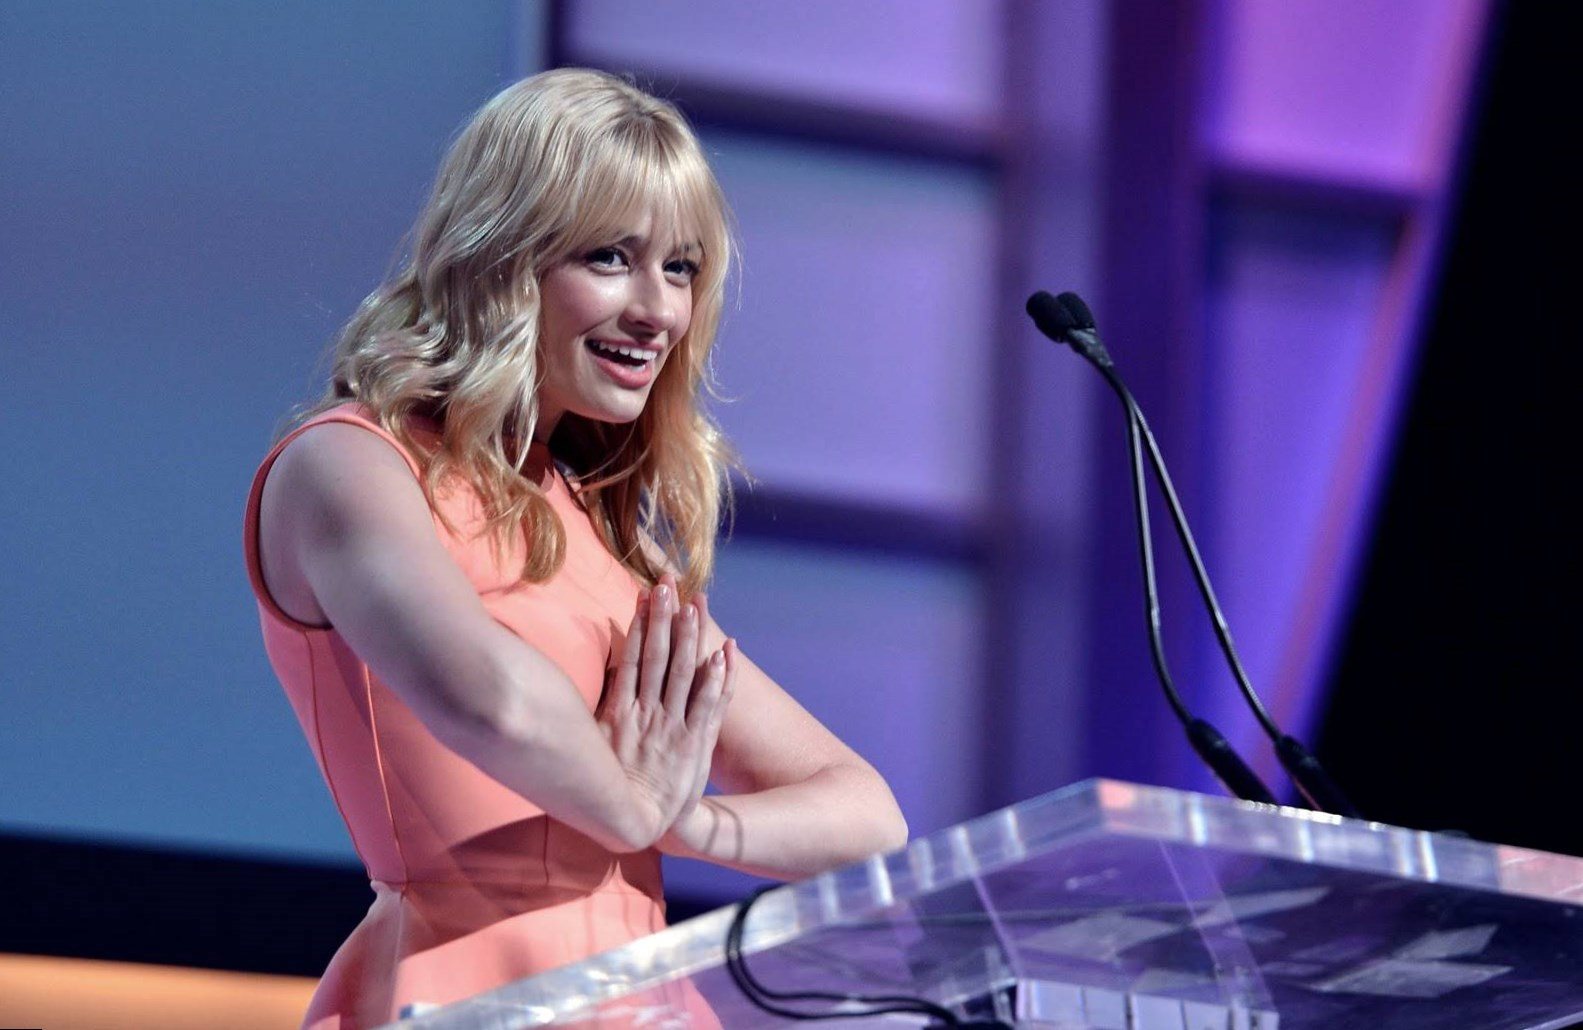 Beth Behrs body measurements